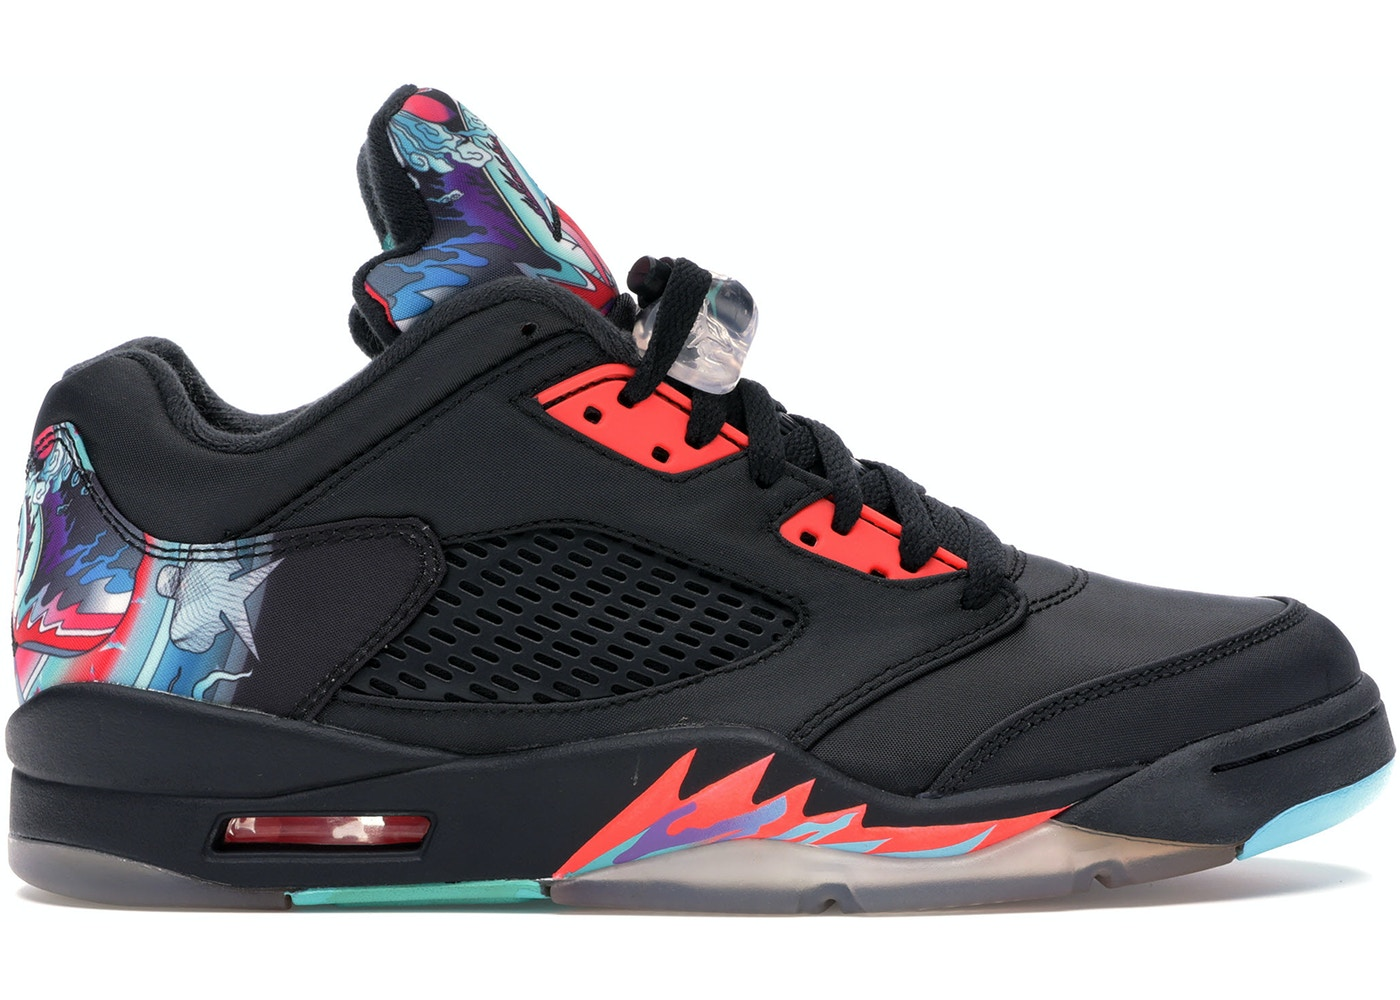 94253156d477 Jordan 5 Retro Low Chinese New Year - 840475-060